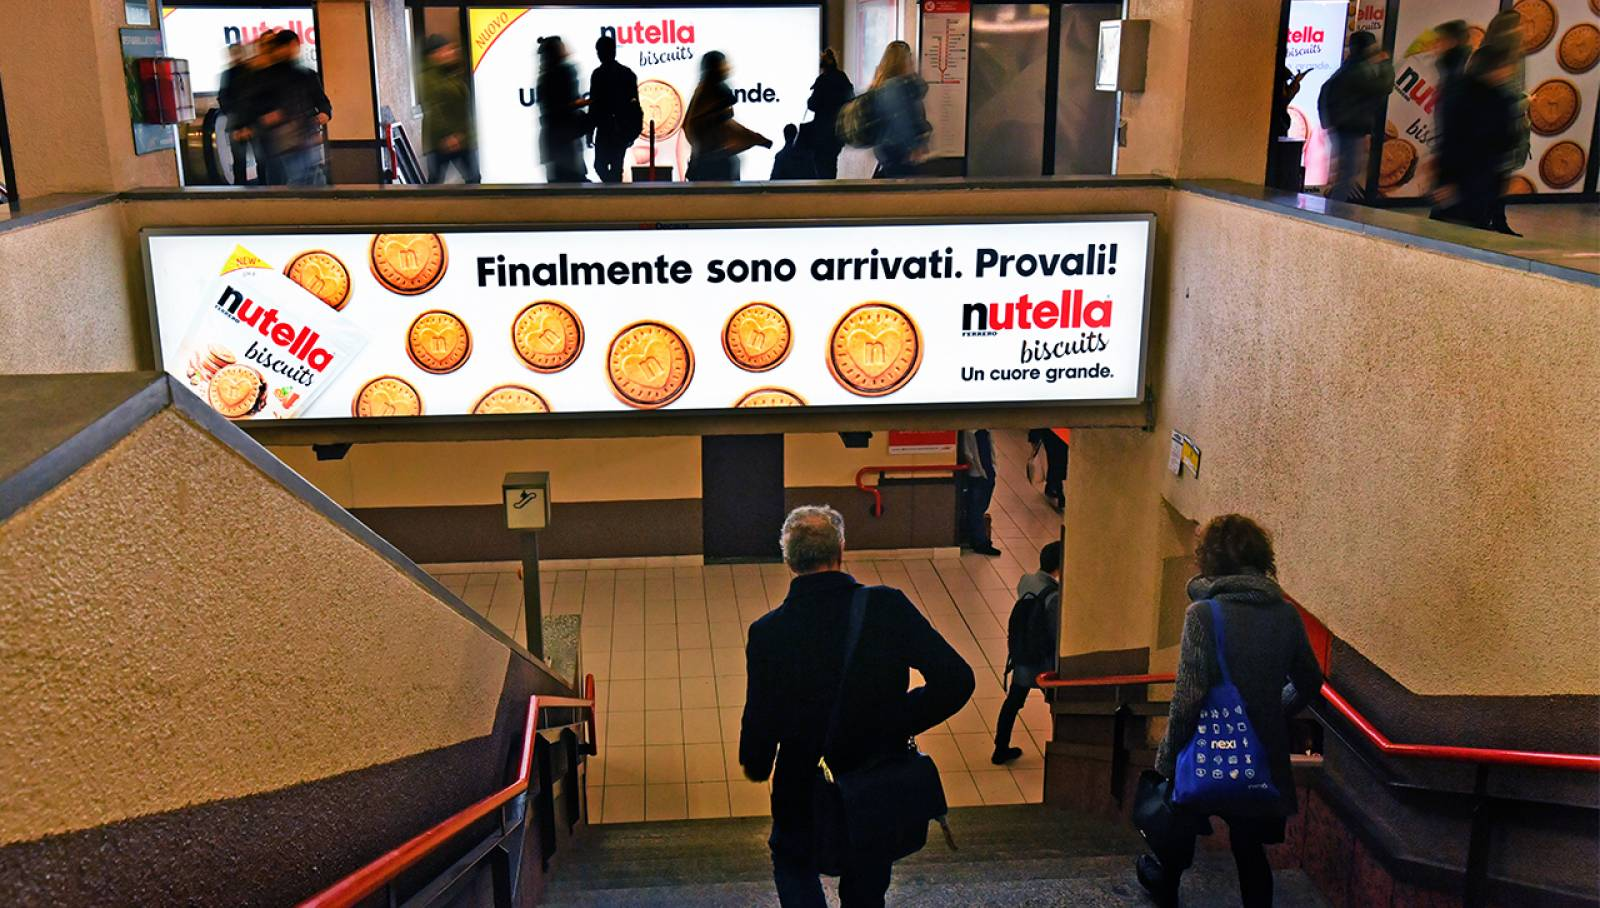 OOH IGPDecaux Milan Station Domination for Ferrero Nutella Biscuits